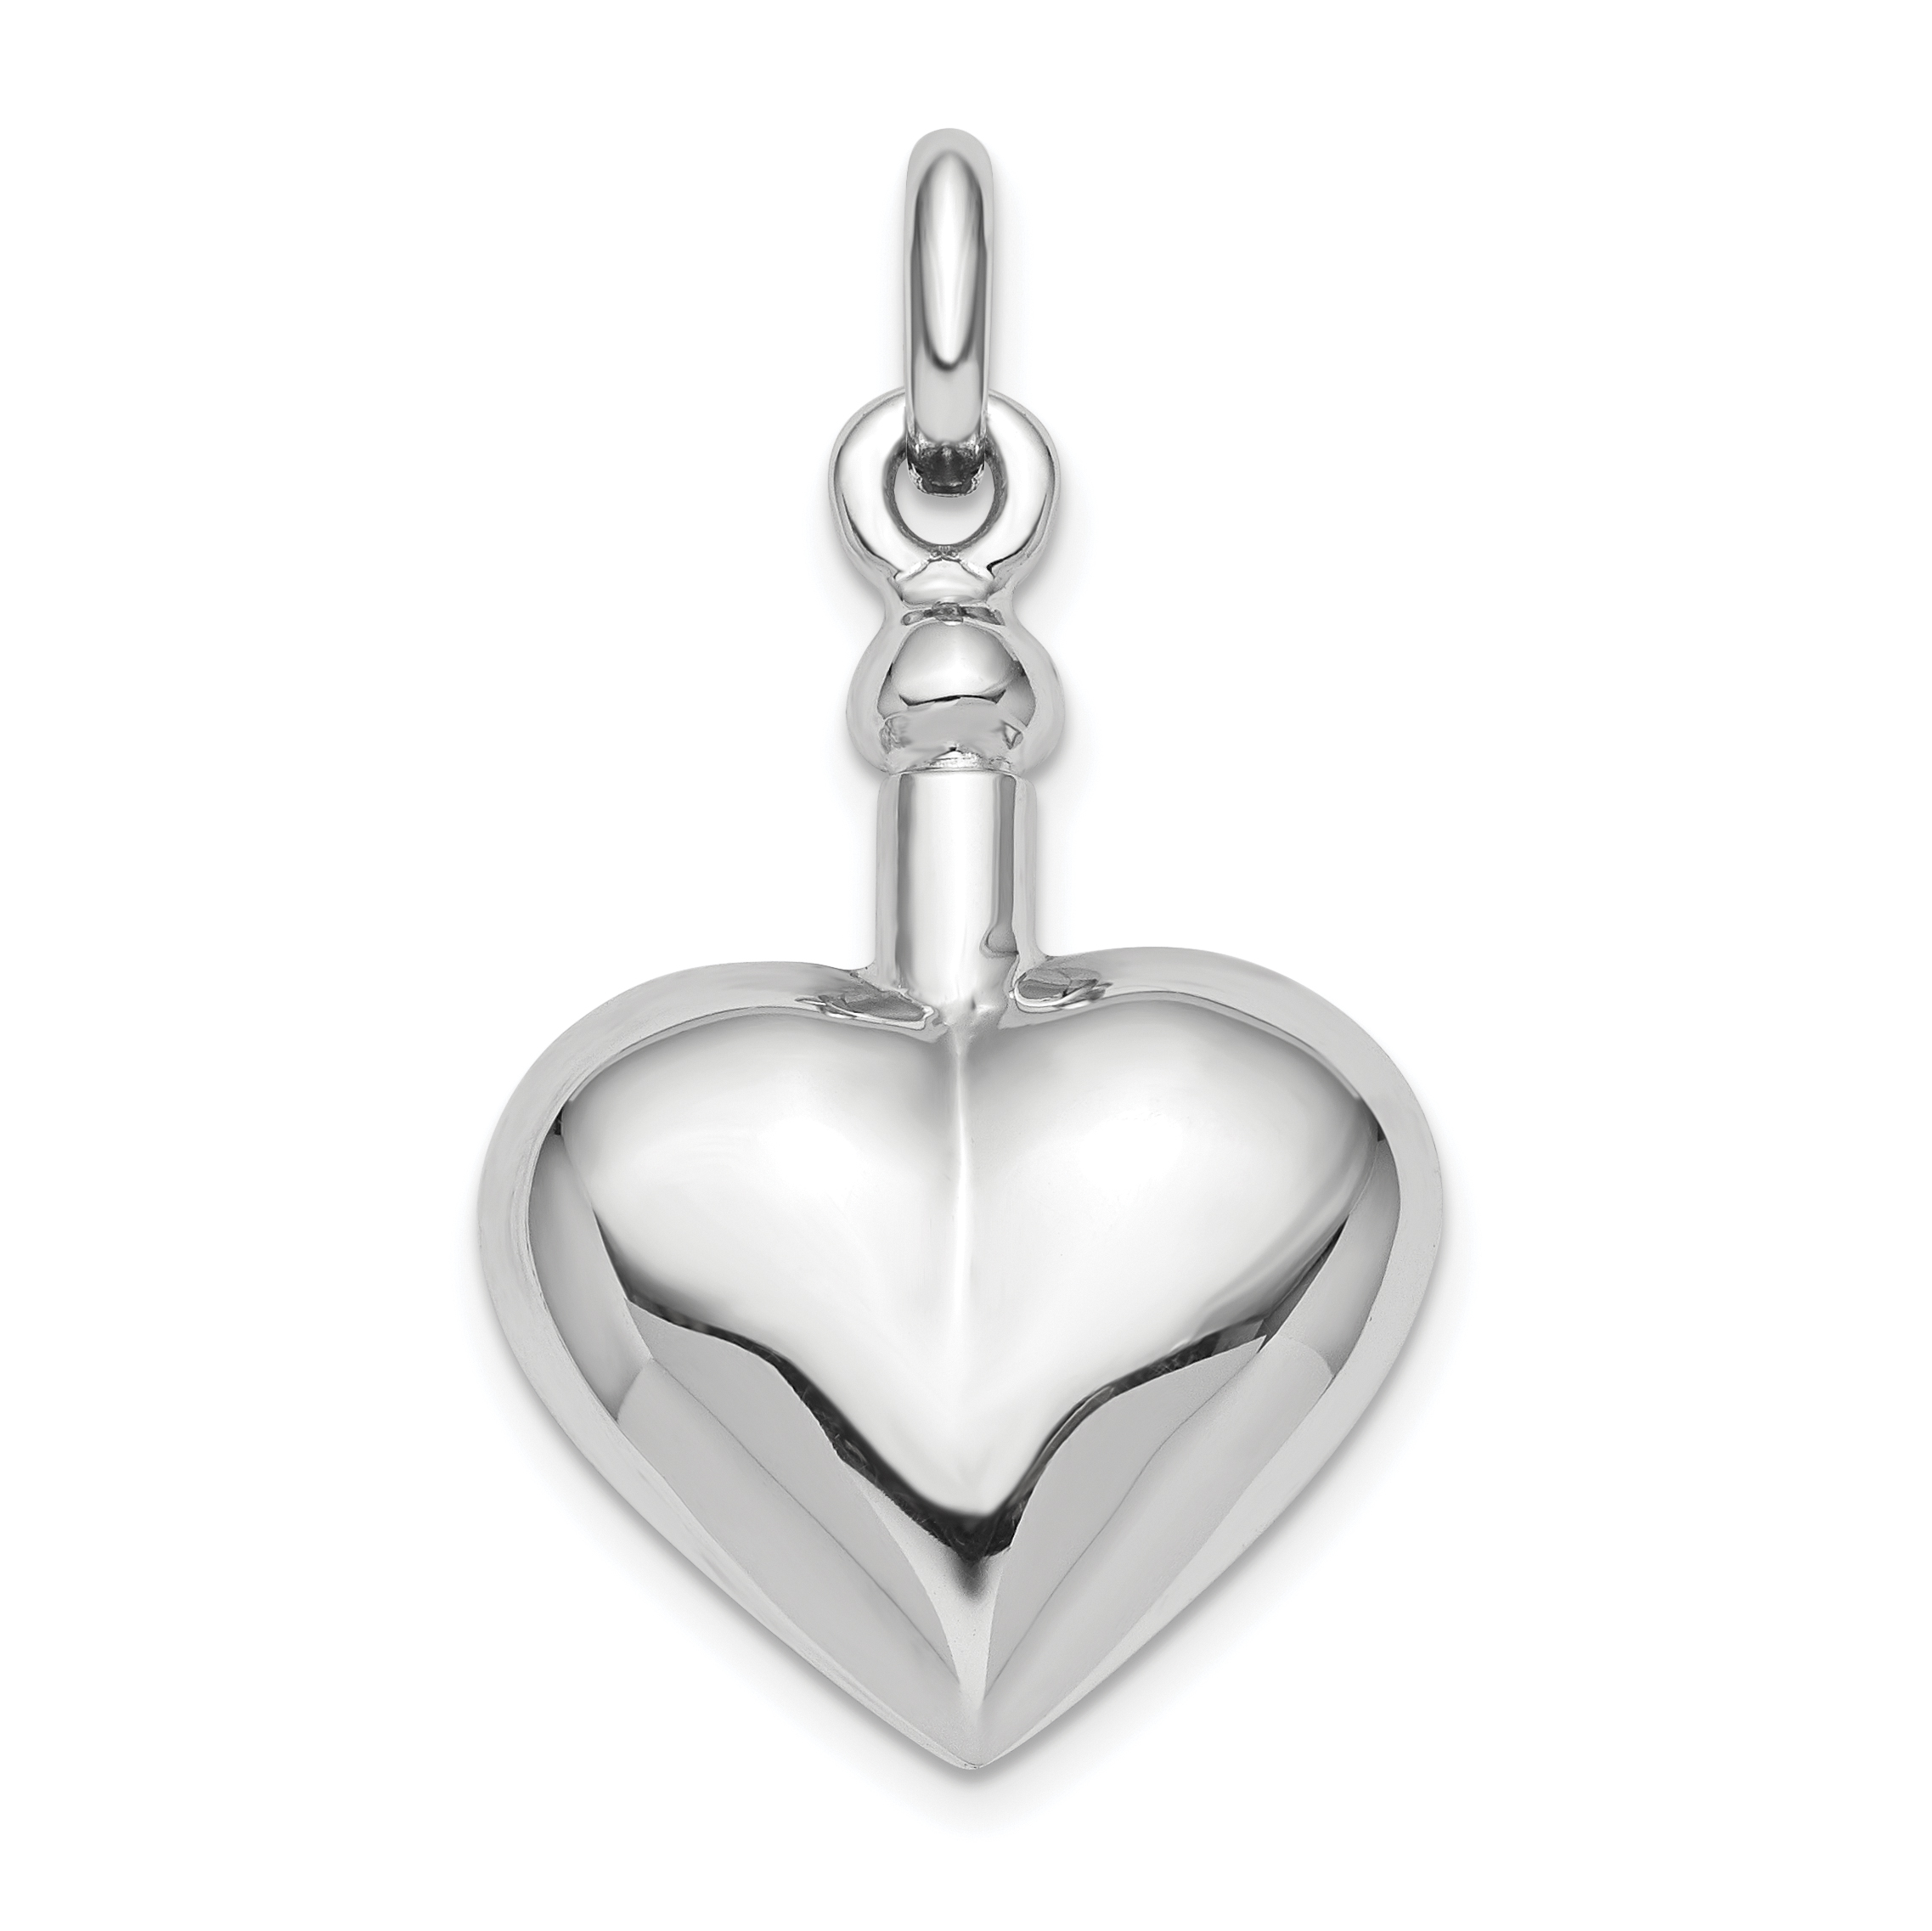 925 Sterling Silver Heart Pendant Charm Necklace Love Puffed Fine Jewelry Gifts For Women For Her